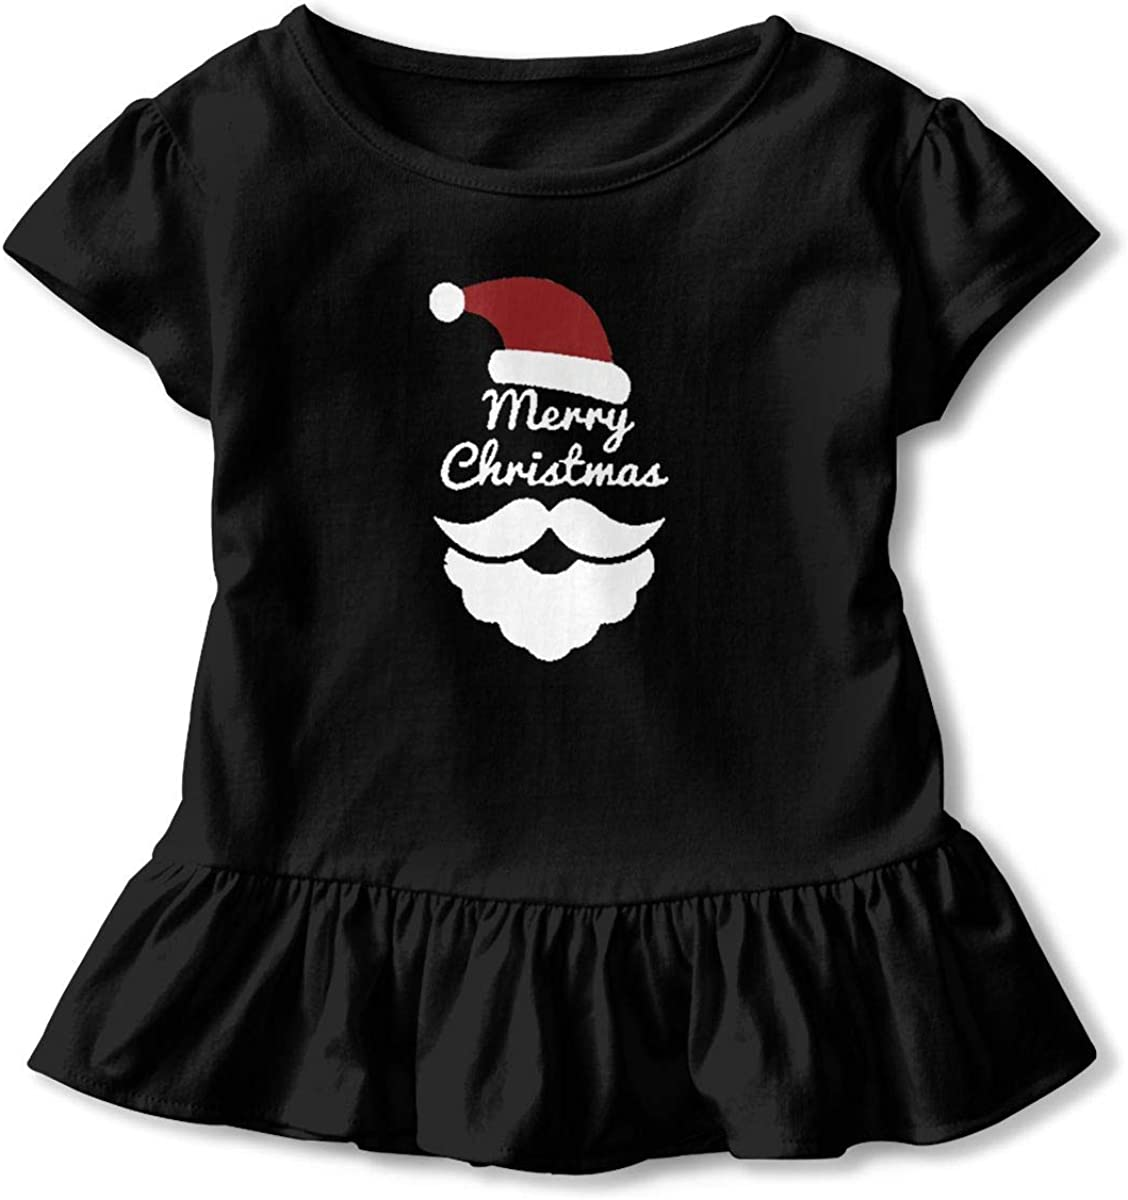 Not Available Merry Christmas Shirt Baby Girls Flounced Cotton Basic Shirt for 2-6 Years Old Baby